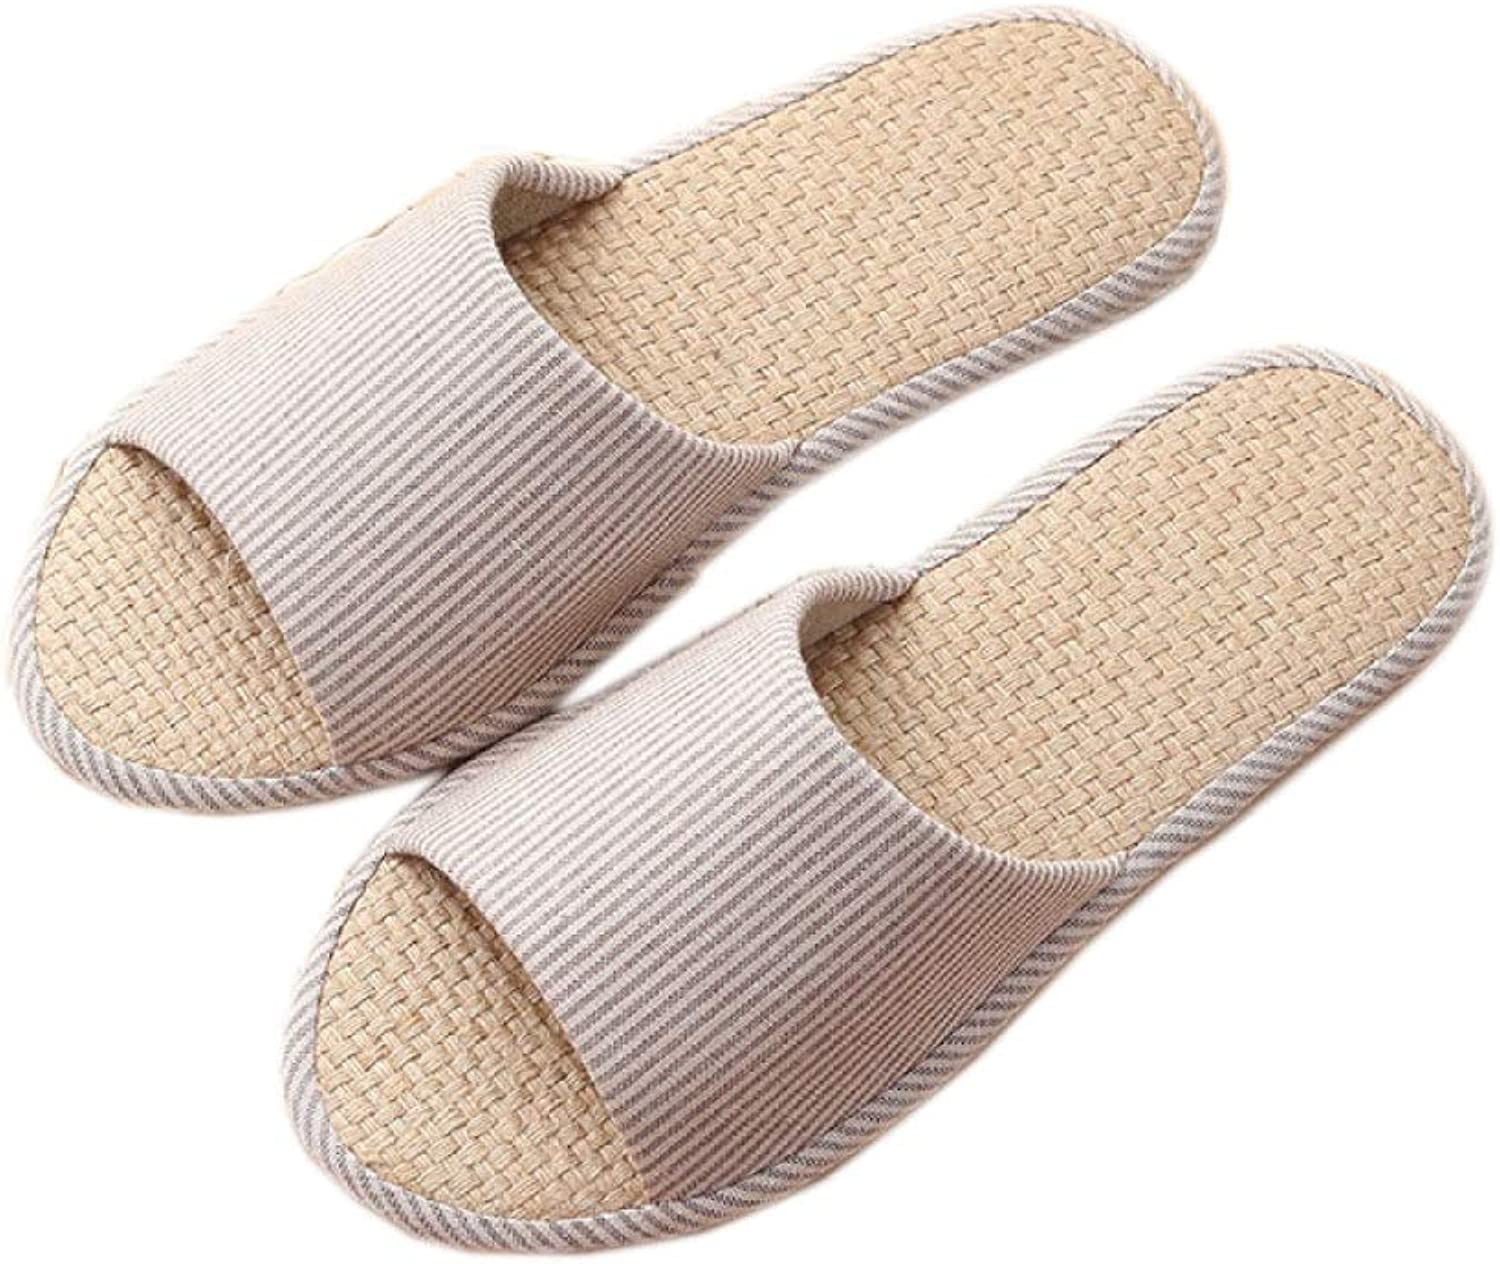 KWWA Home Linen Slippers Indoor Couple Sandals and Plain Plain Linen Floor Mopping Floor shoes Sandals